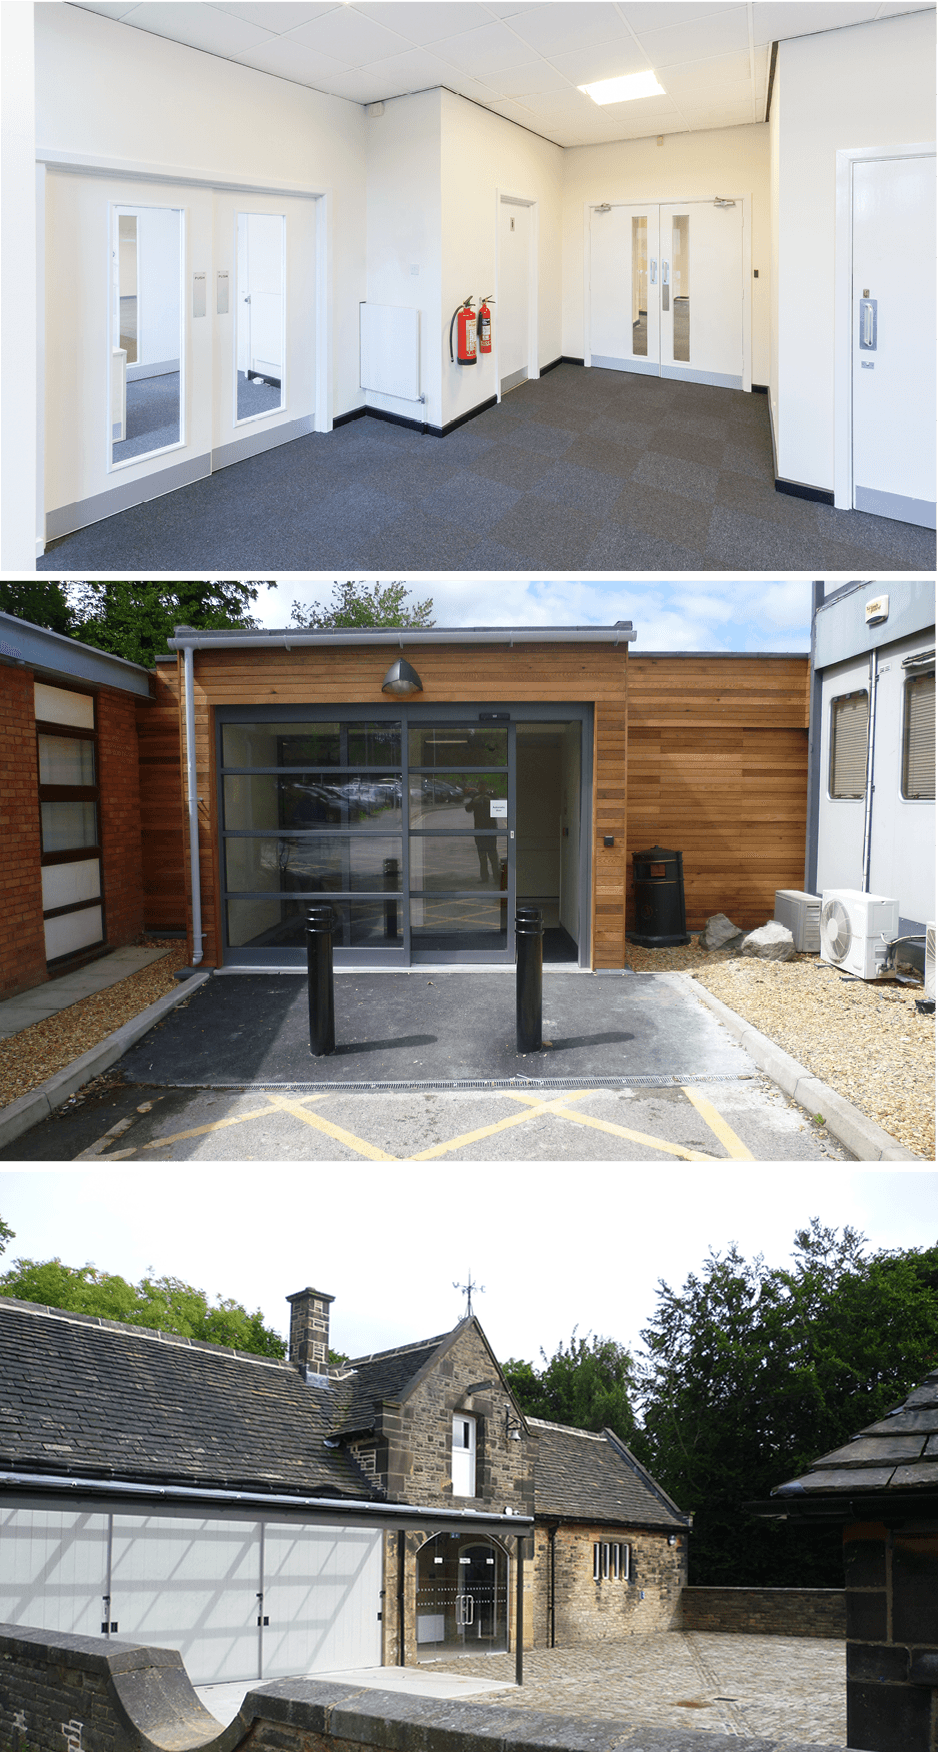 Rosslee Construction - Refurbishment and extension work